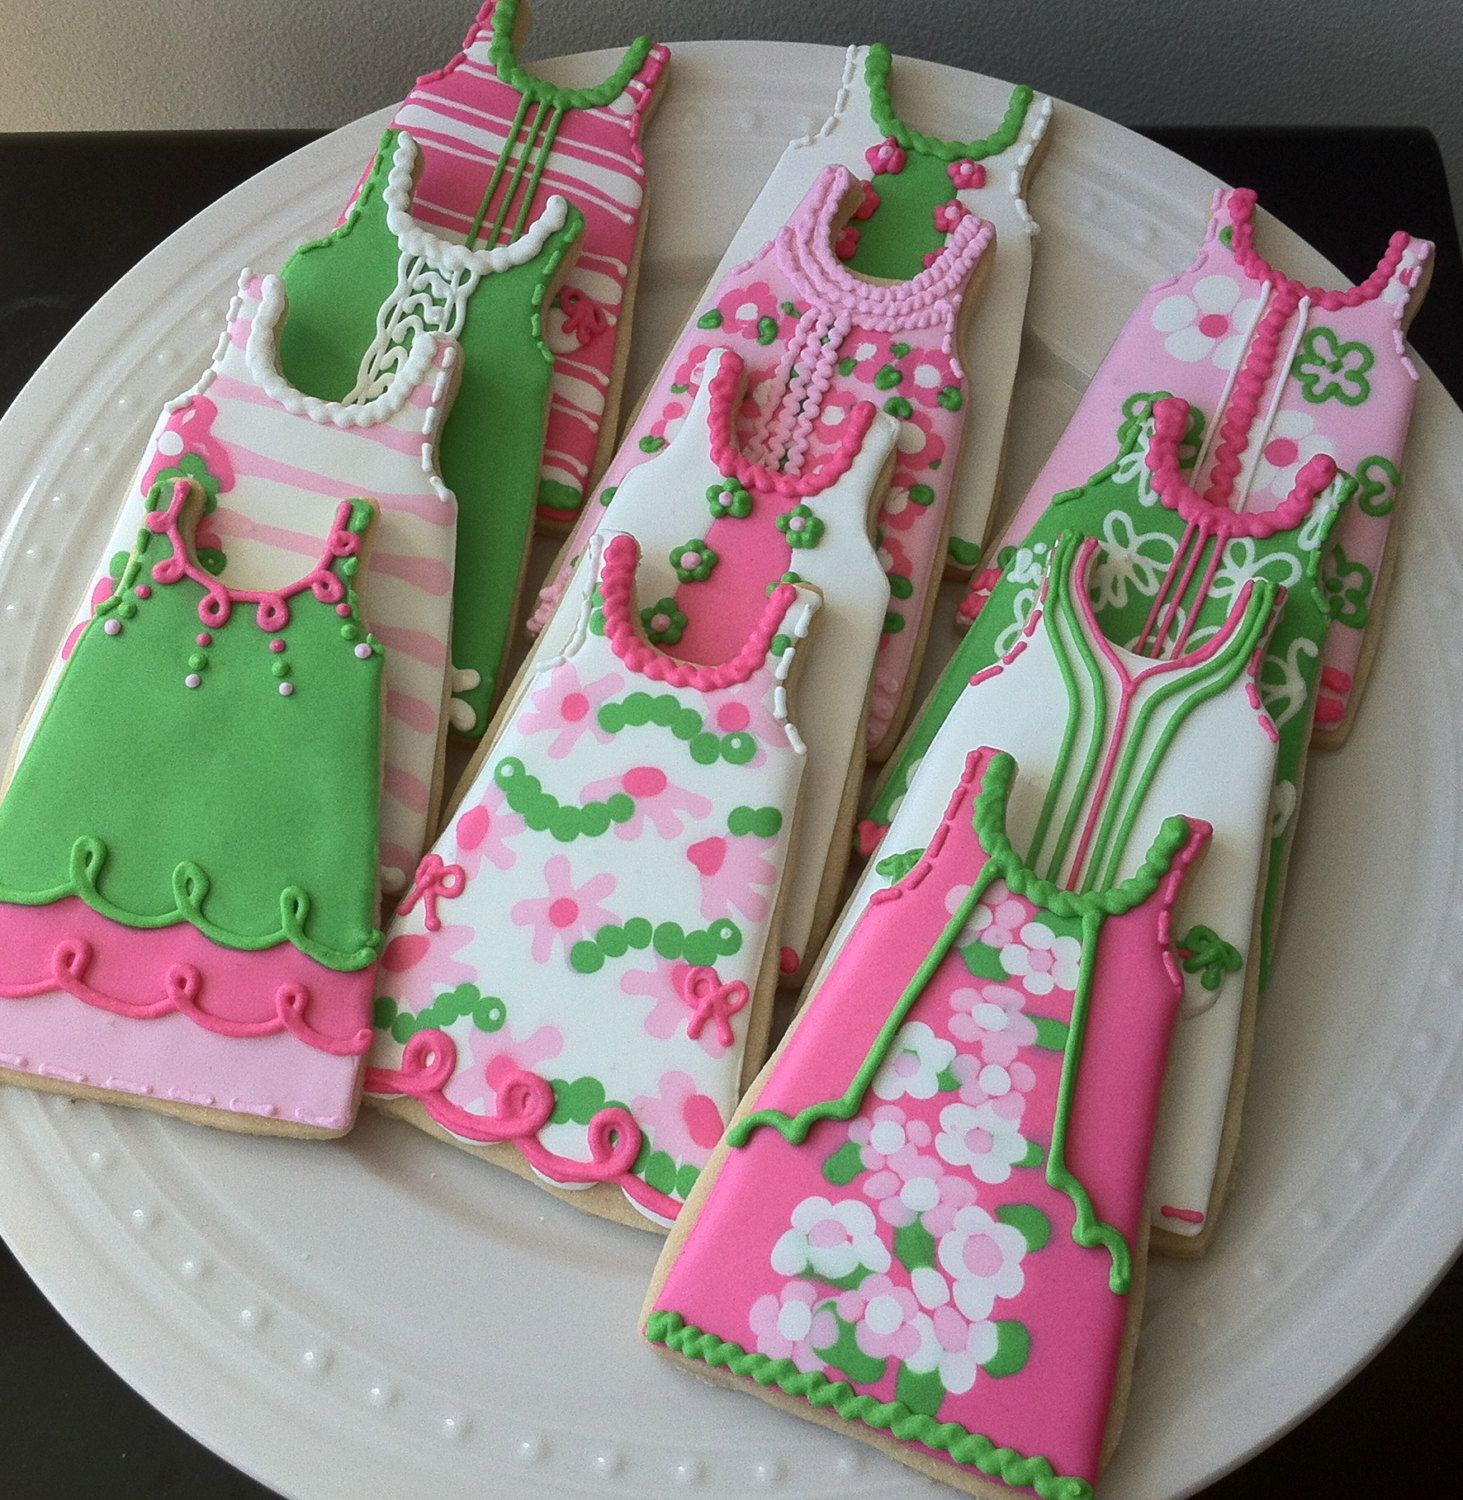 Lilly Pulitzer Inspired Shift Dress Decorated Cookies